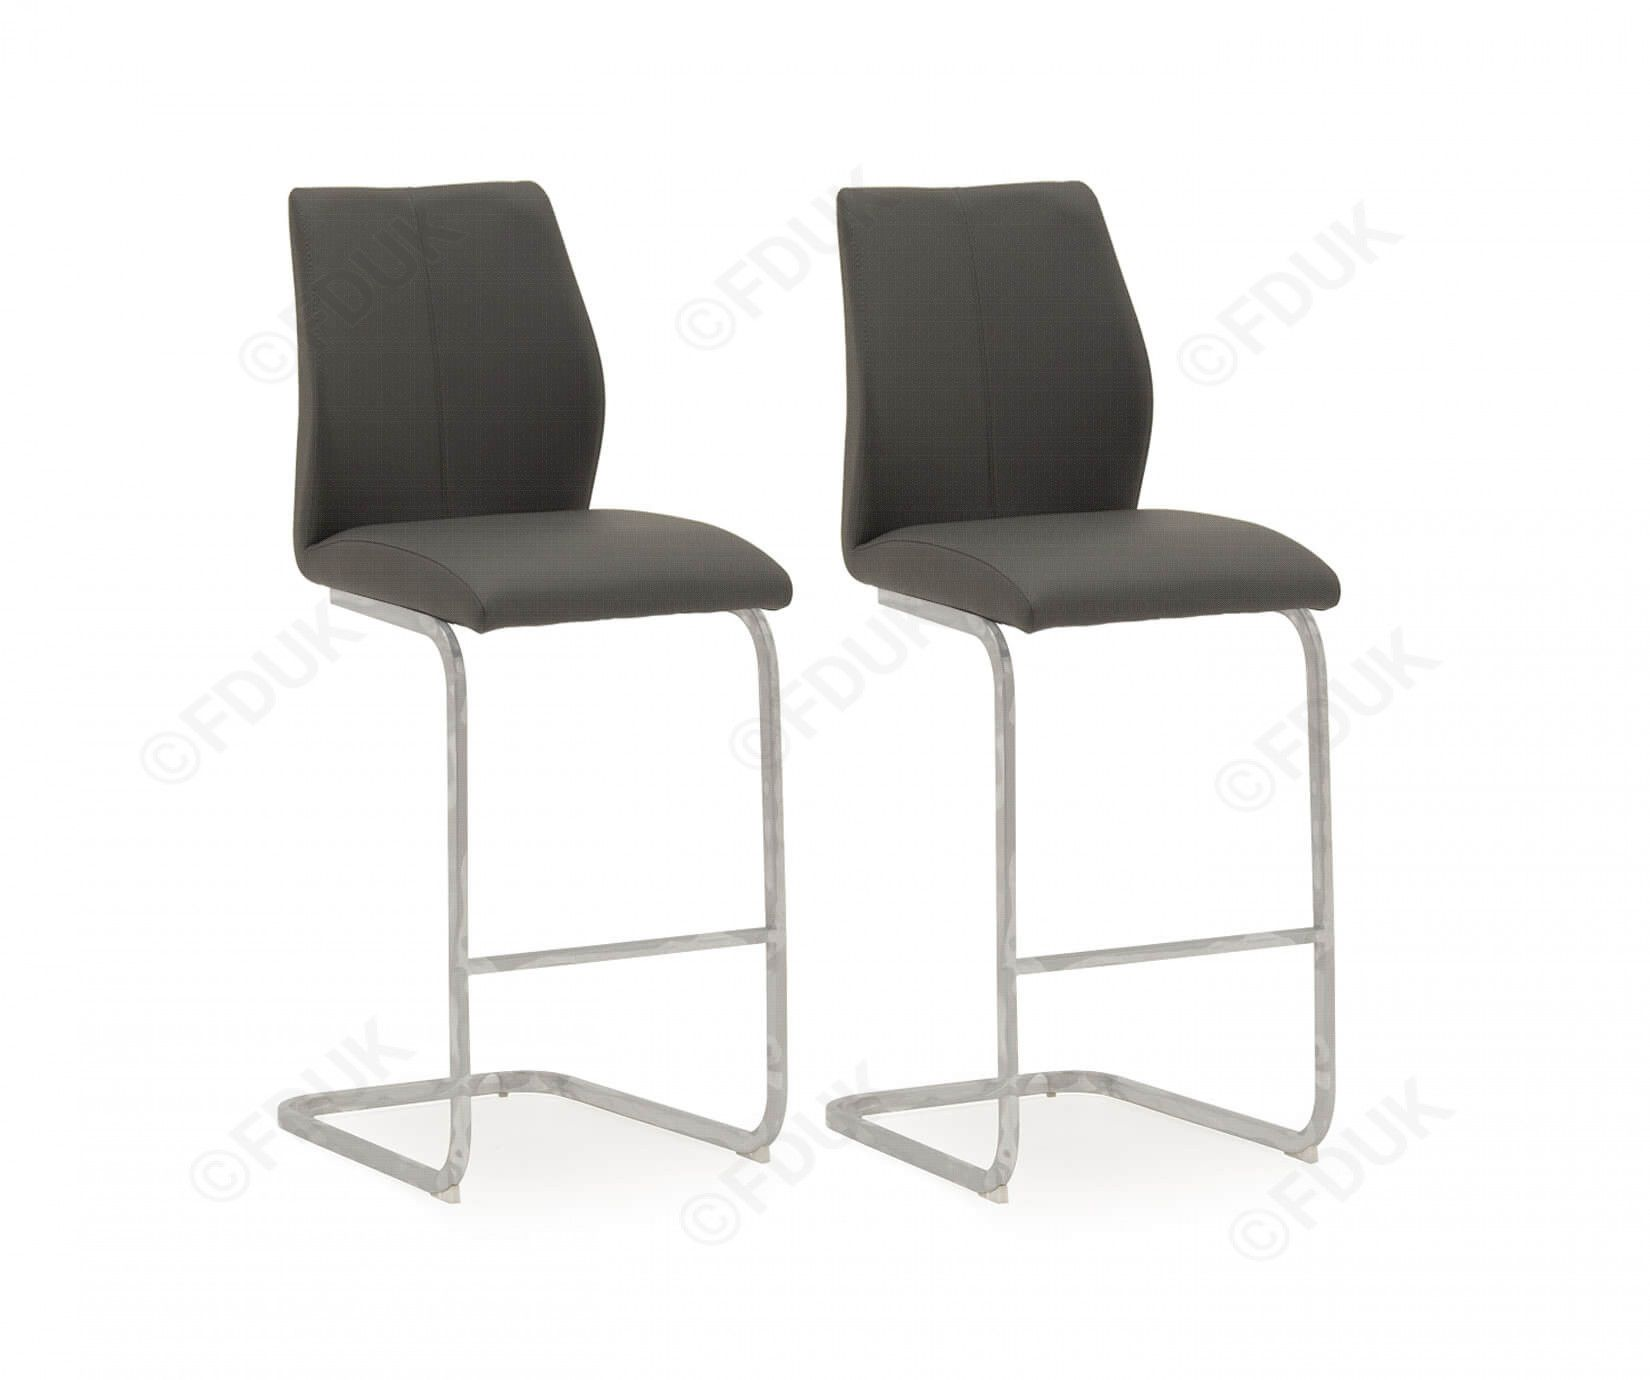 Peachy Aquileia Grey Faux Leather With Chrome Cantilever Design Bar Stool Pair 218Vd376 Caraccident5 Cool Chair Designs And Ideas Caraccident5Info